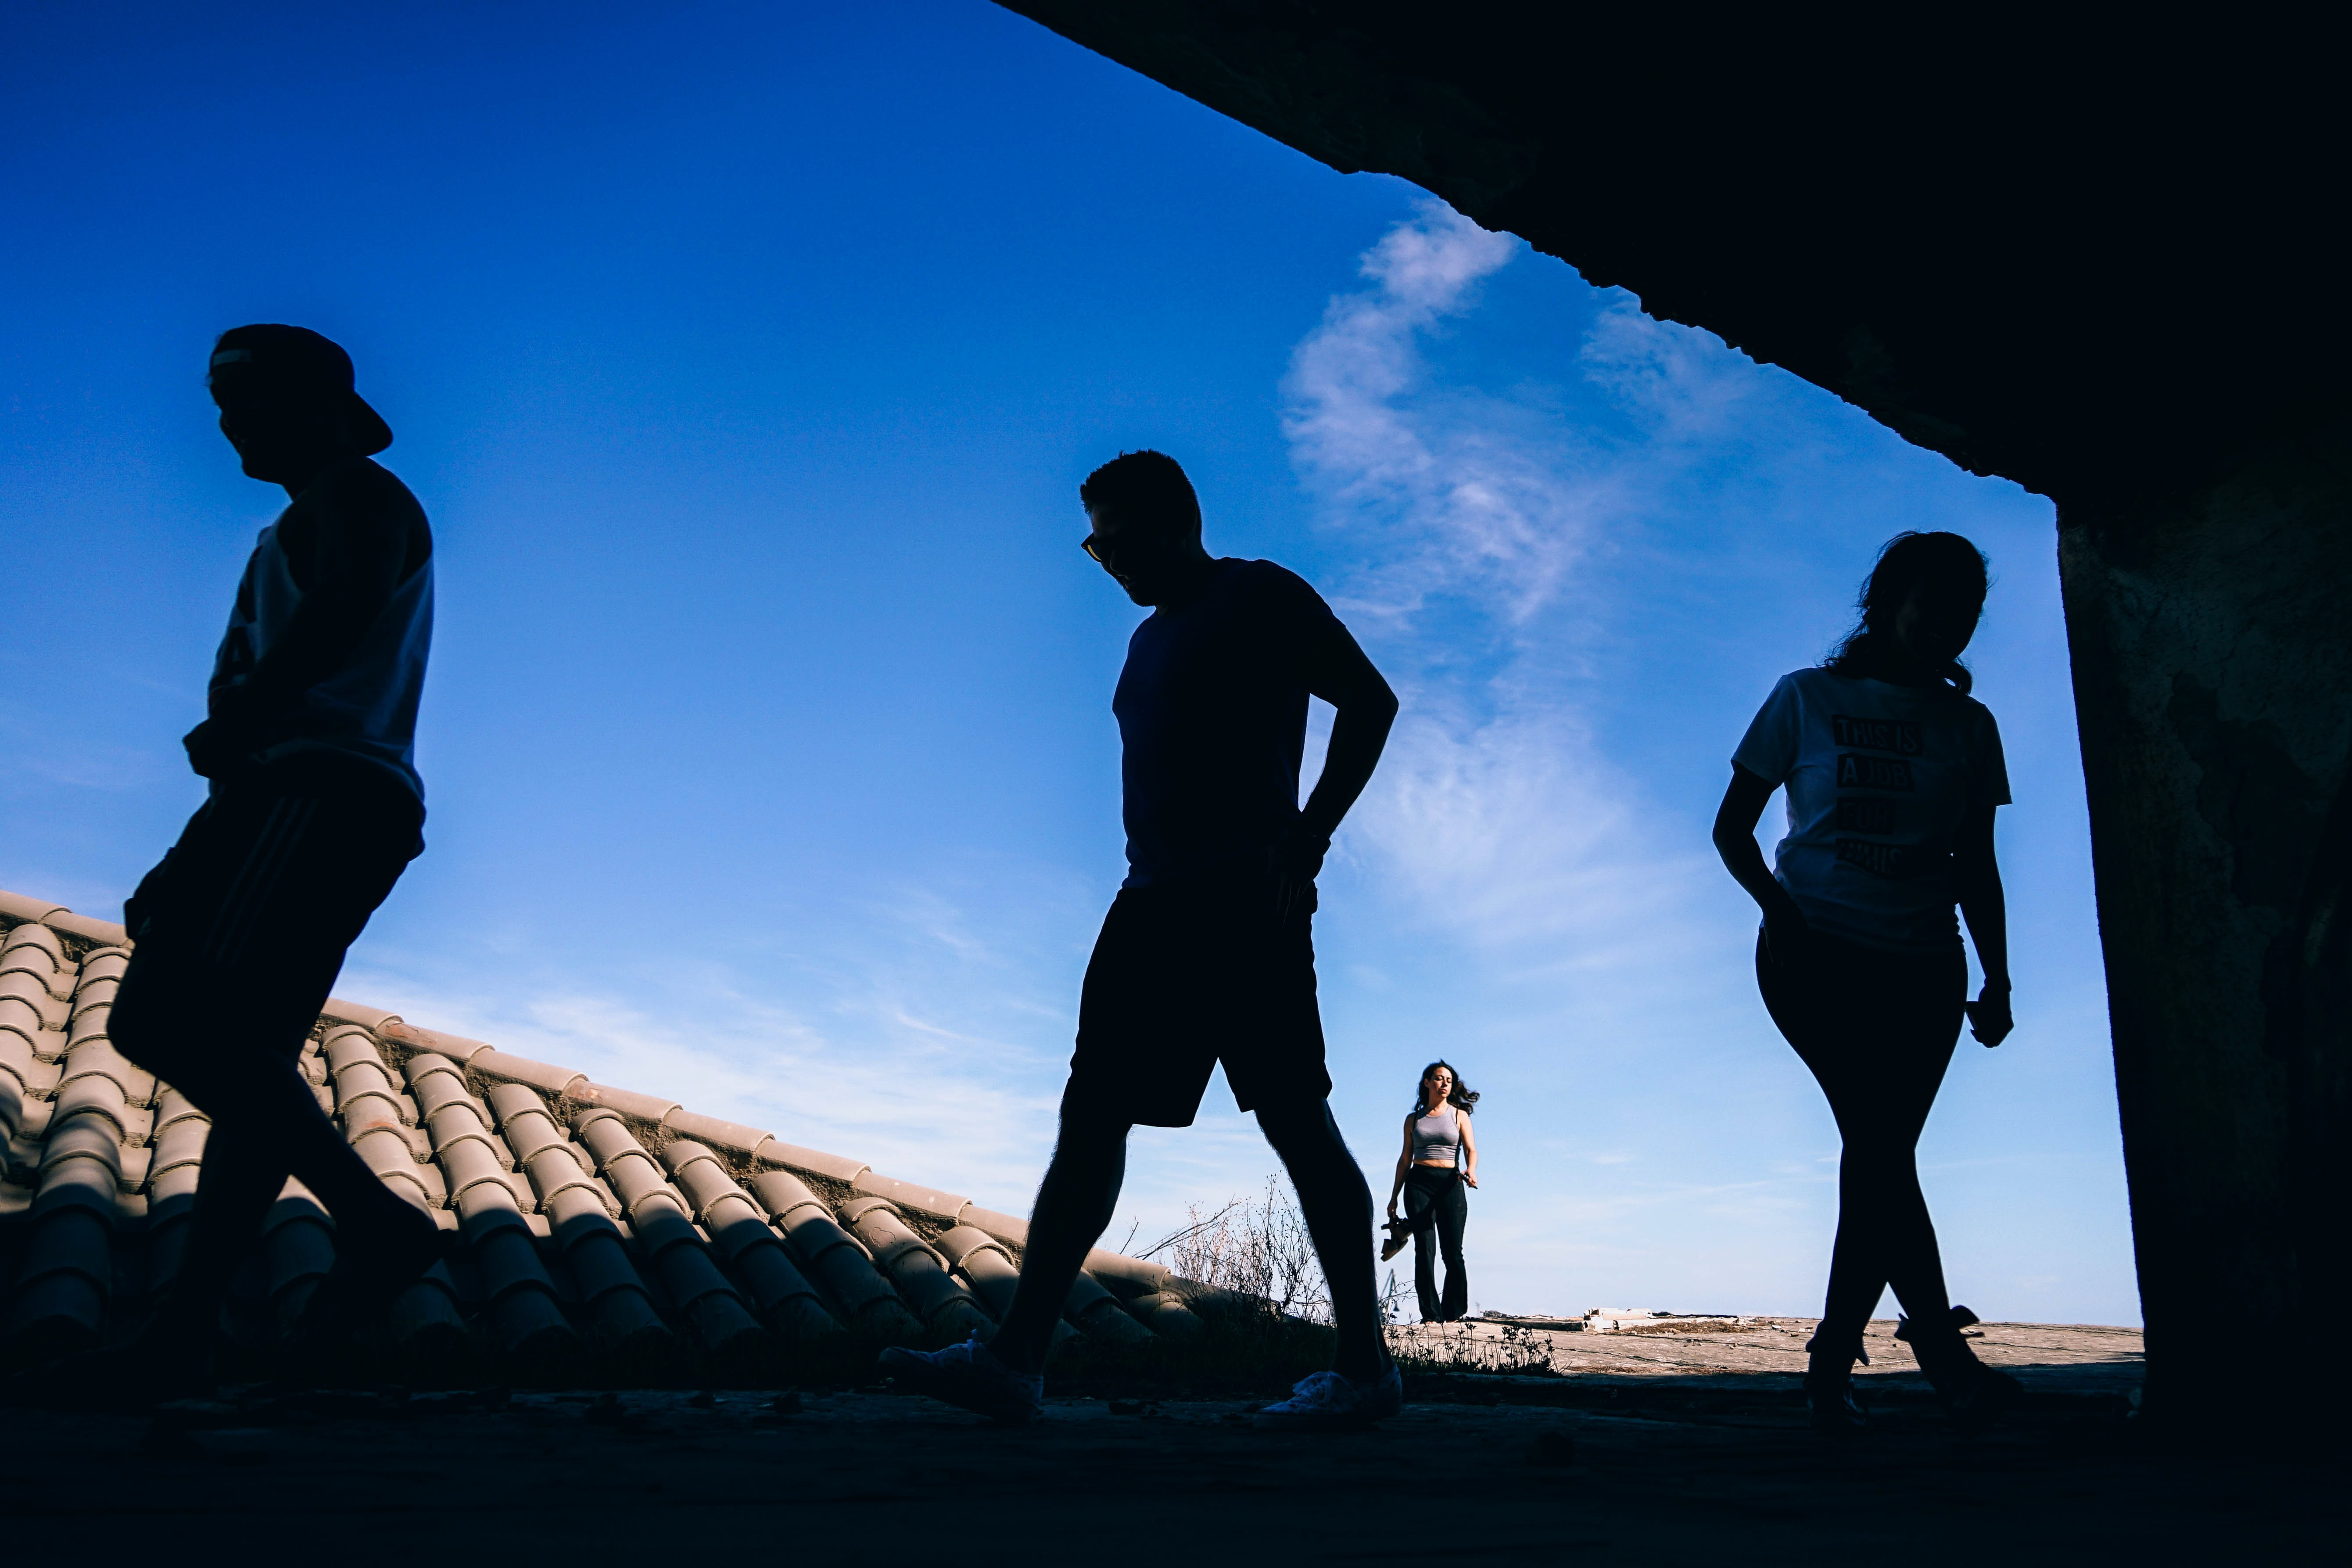 silhouette of three person walking over brown roof during daytime